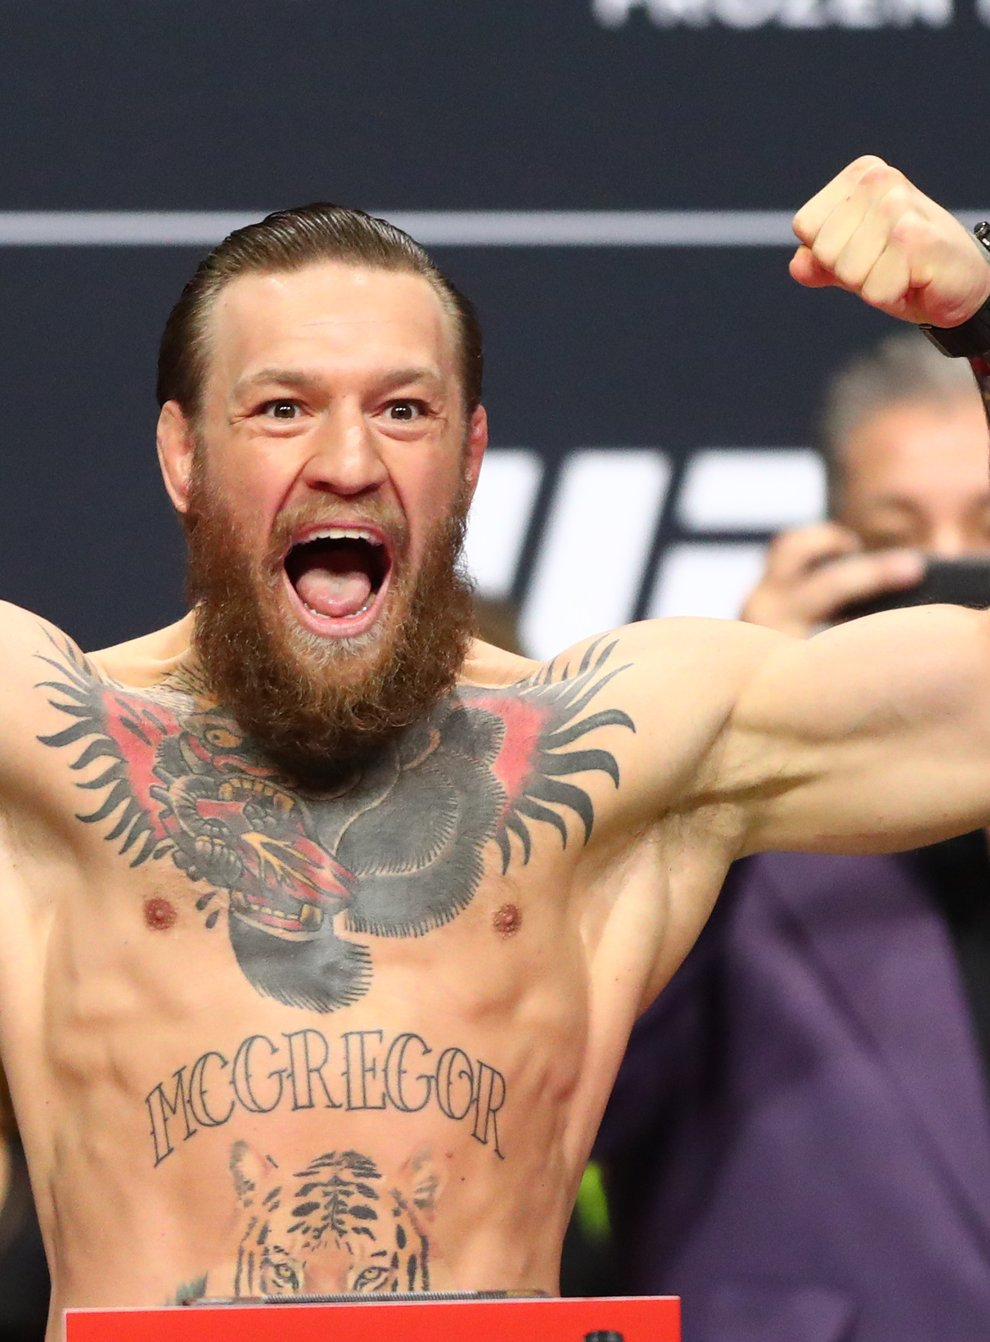 <p>McGregor returns to the octagon for the first time in 12 months next weekend</p>